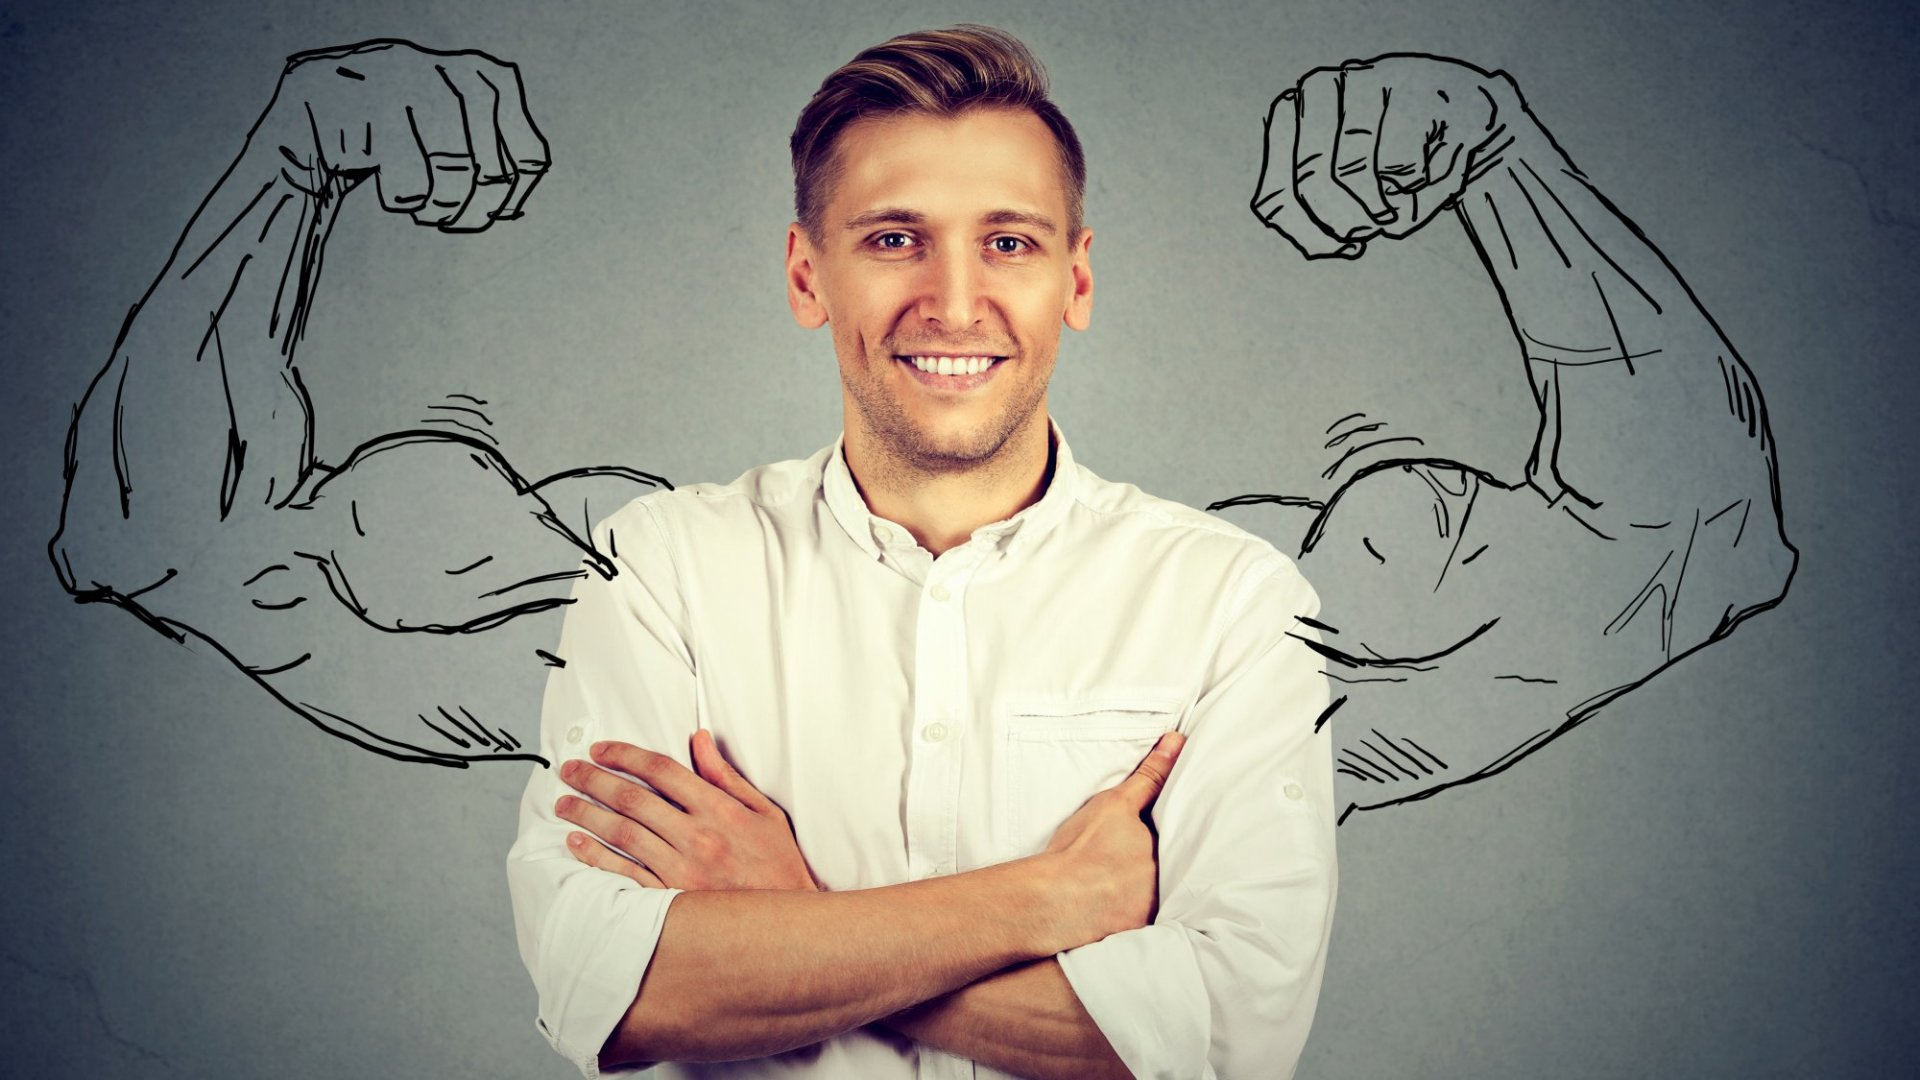 Boost Generation Z Work Ethic With Just 7 Words